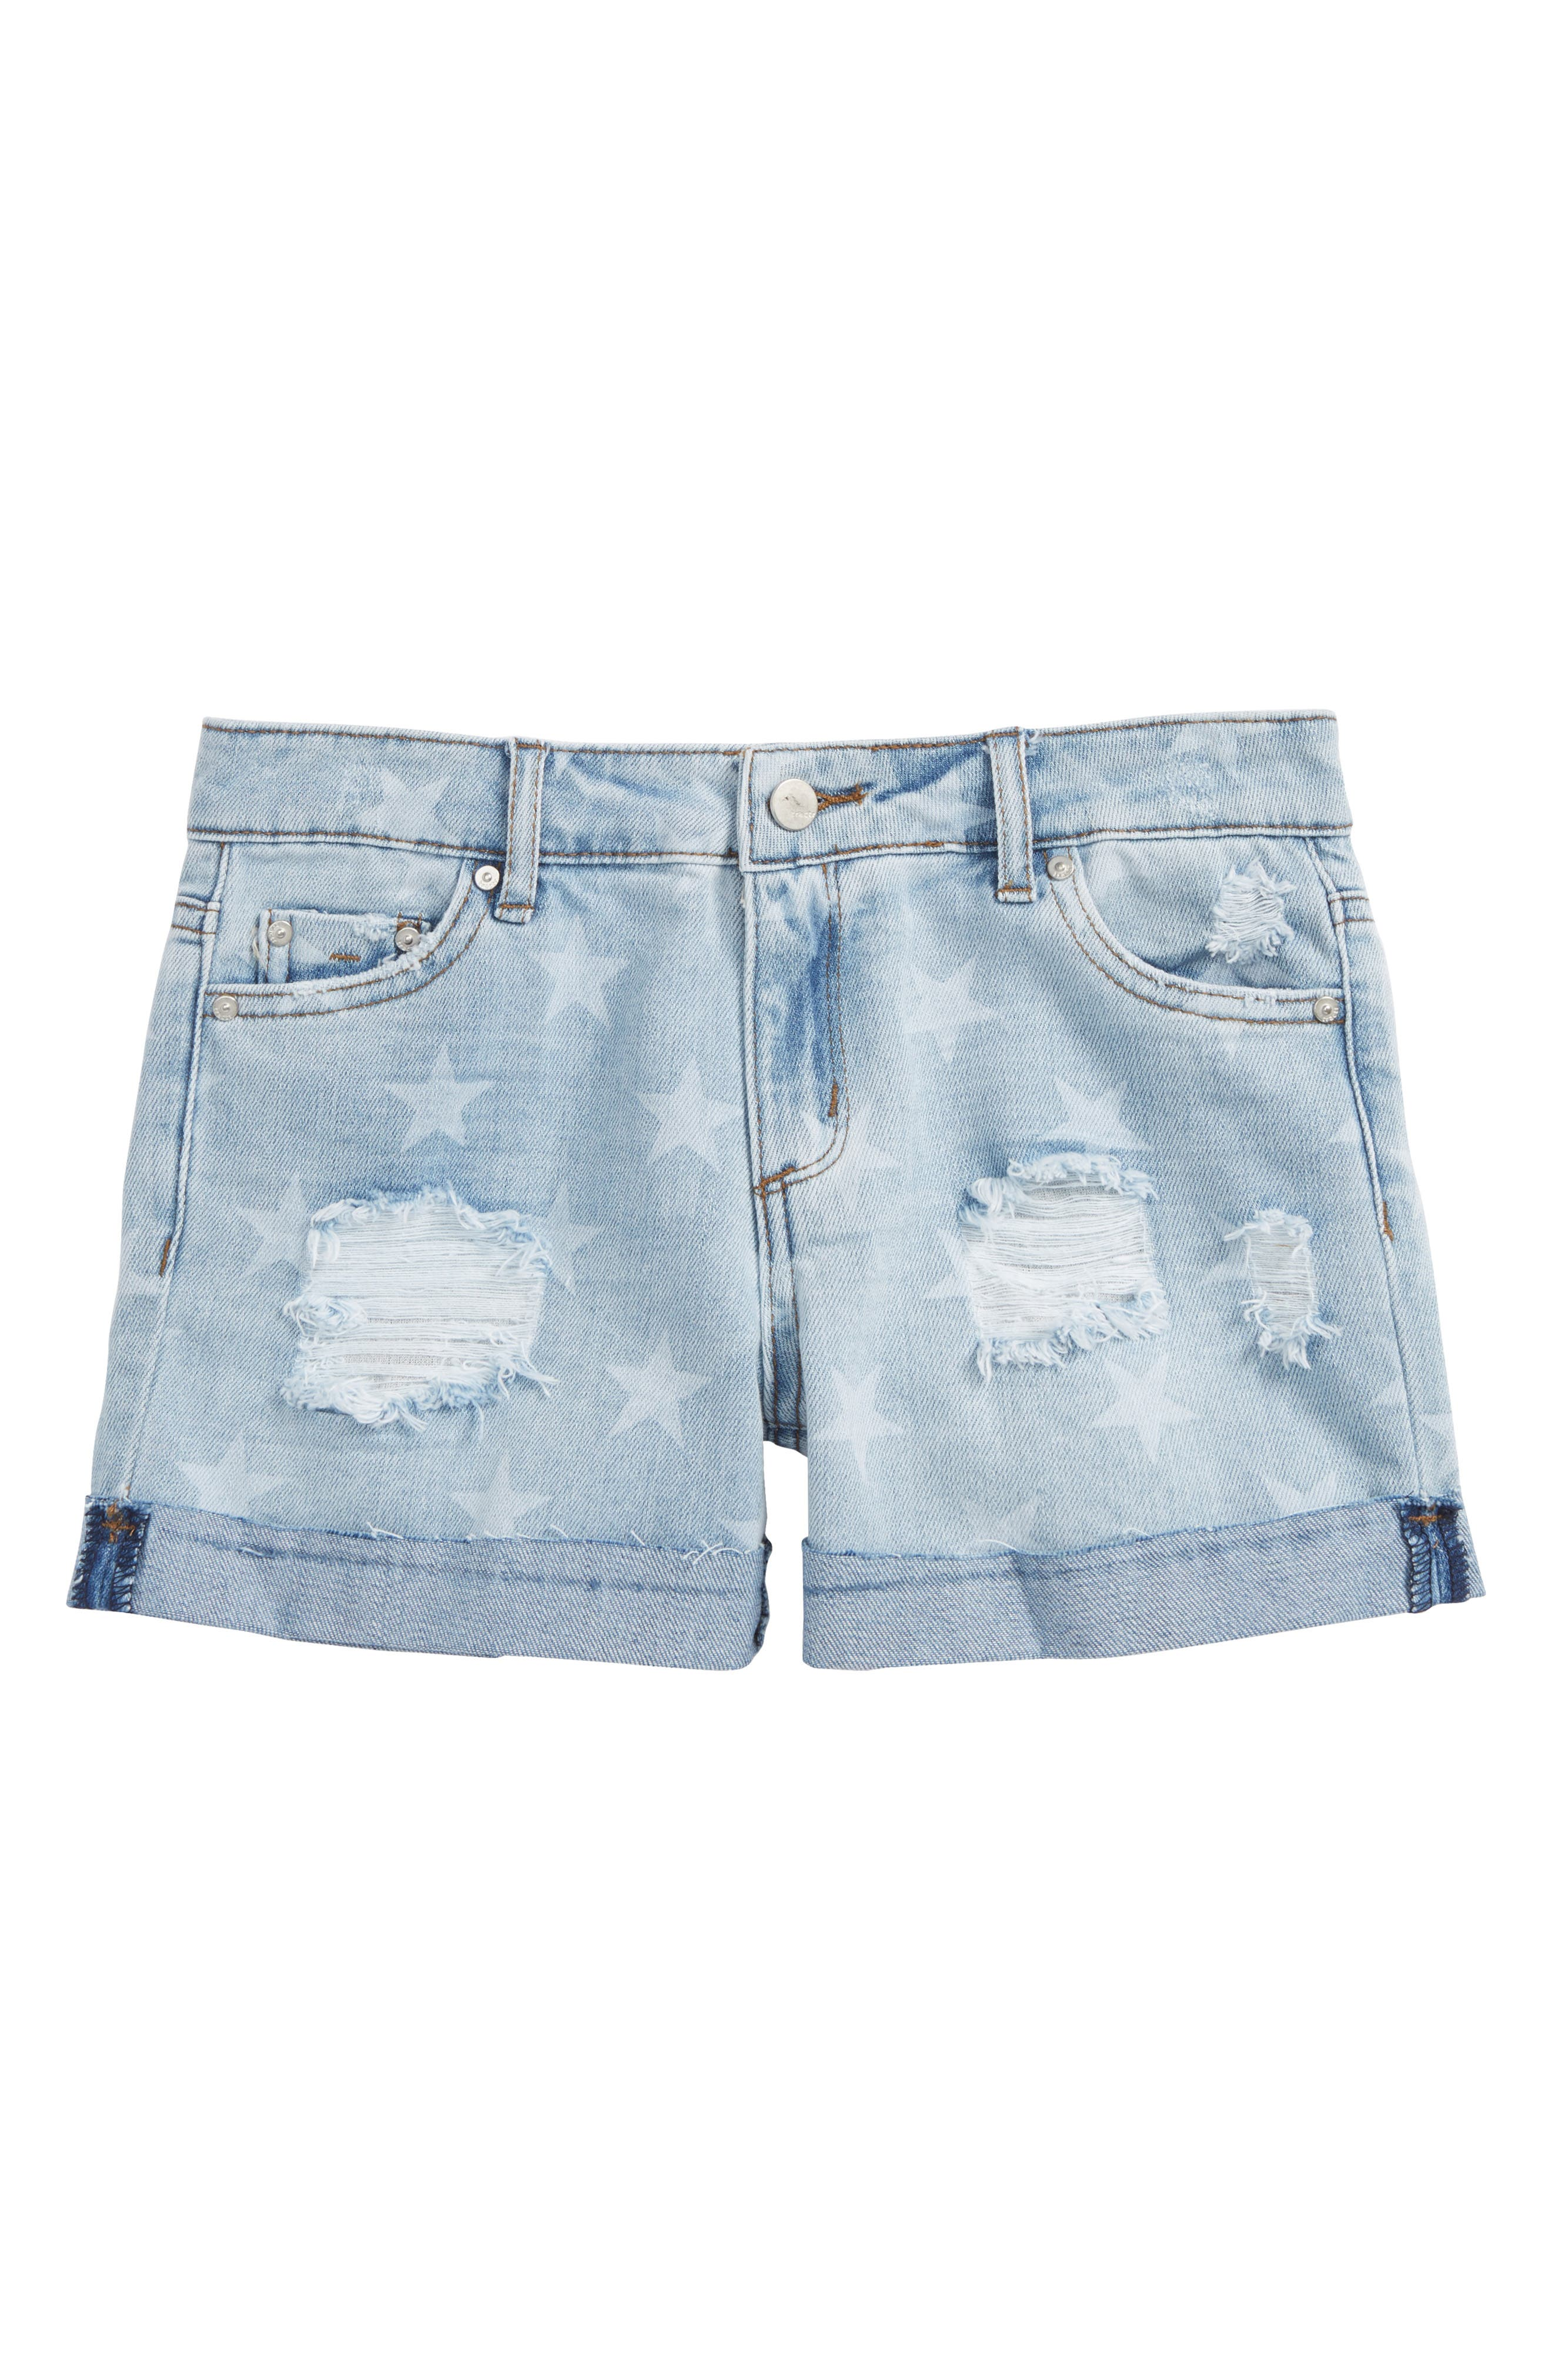 Star Roll Distressed Denim Shorts,                             Main thumbnail 1, color,                             461